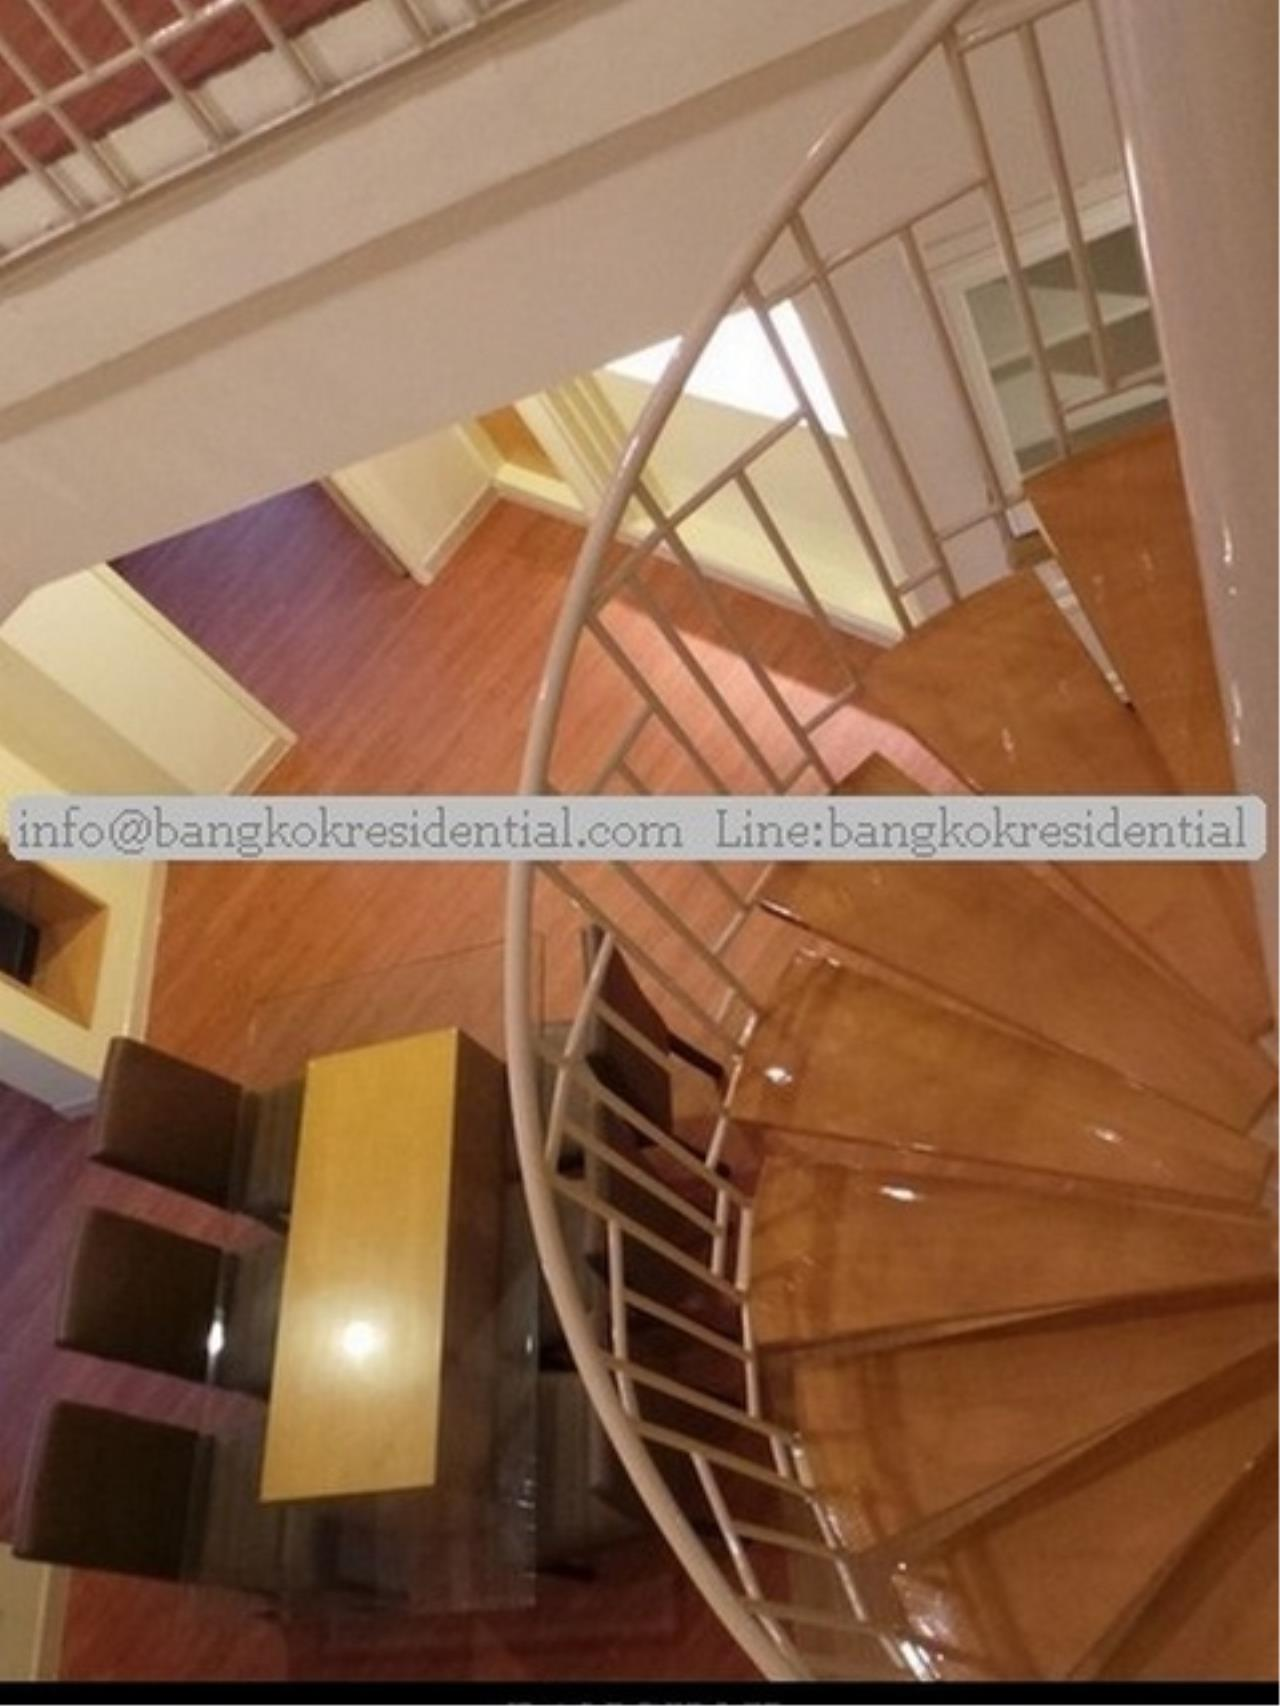 Bangkok Residential Agency's 3BR Tai Ping Tower For Rent (BR4448CD) 5